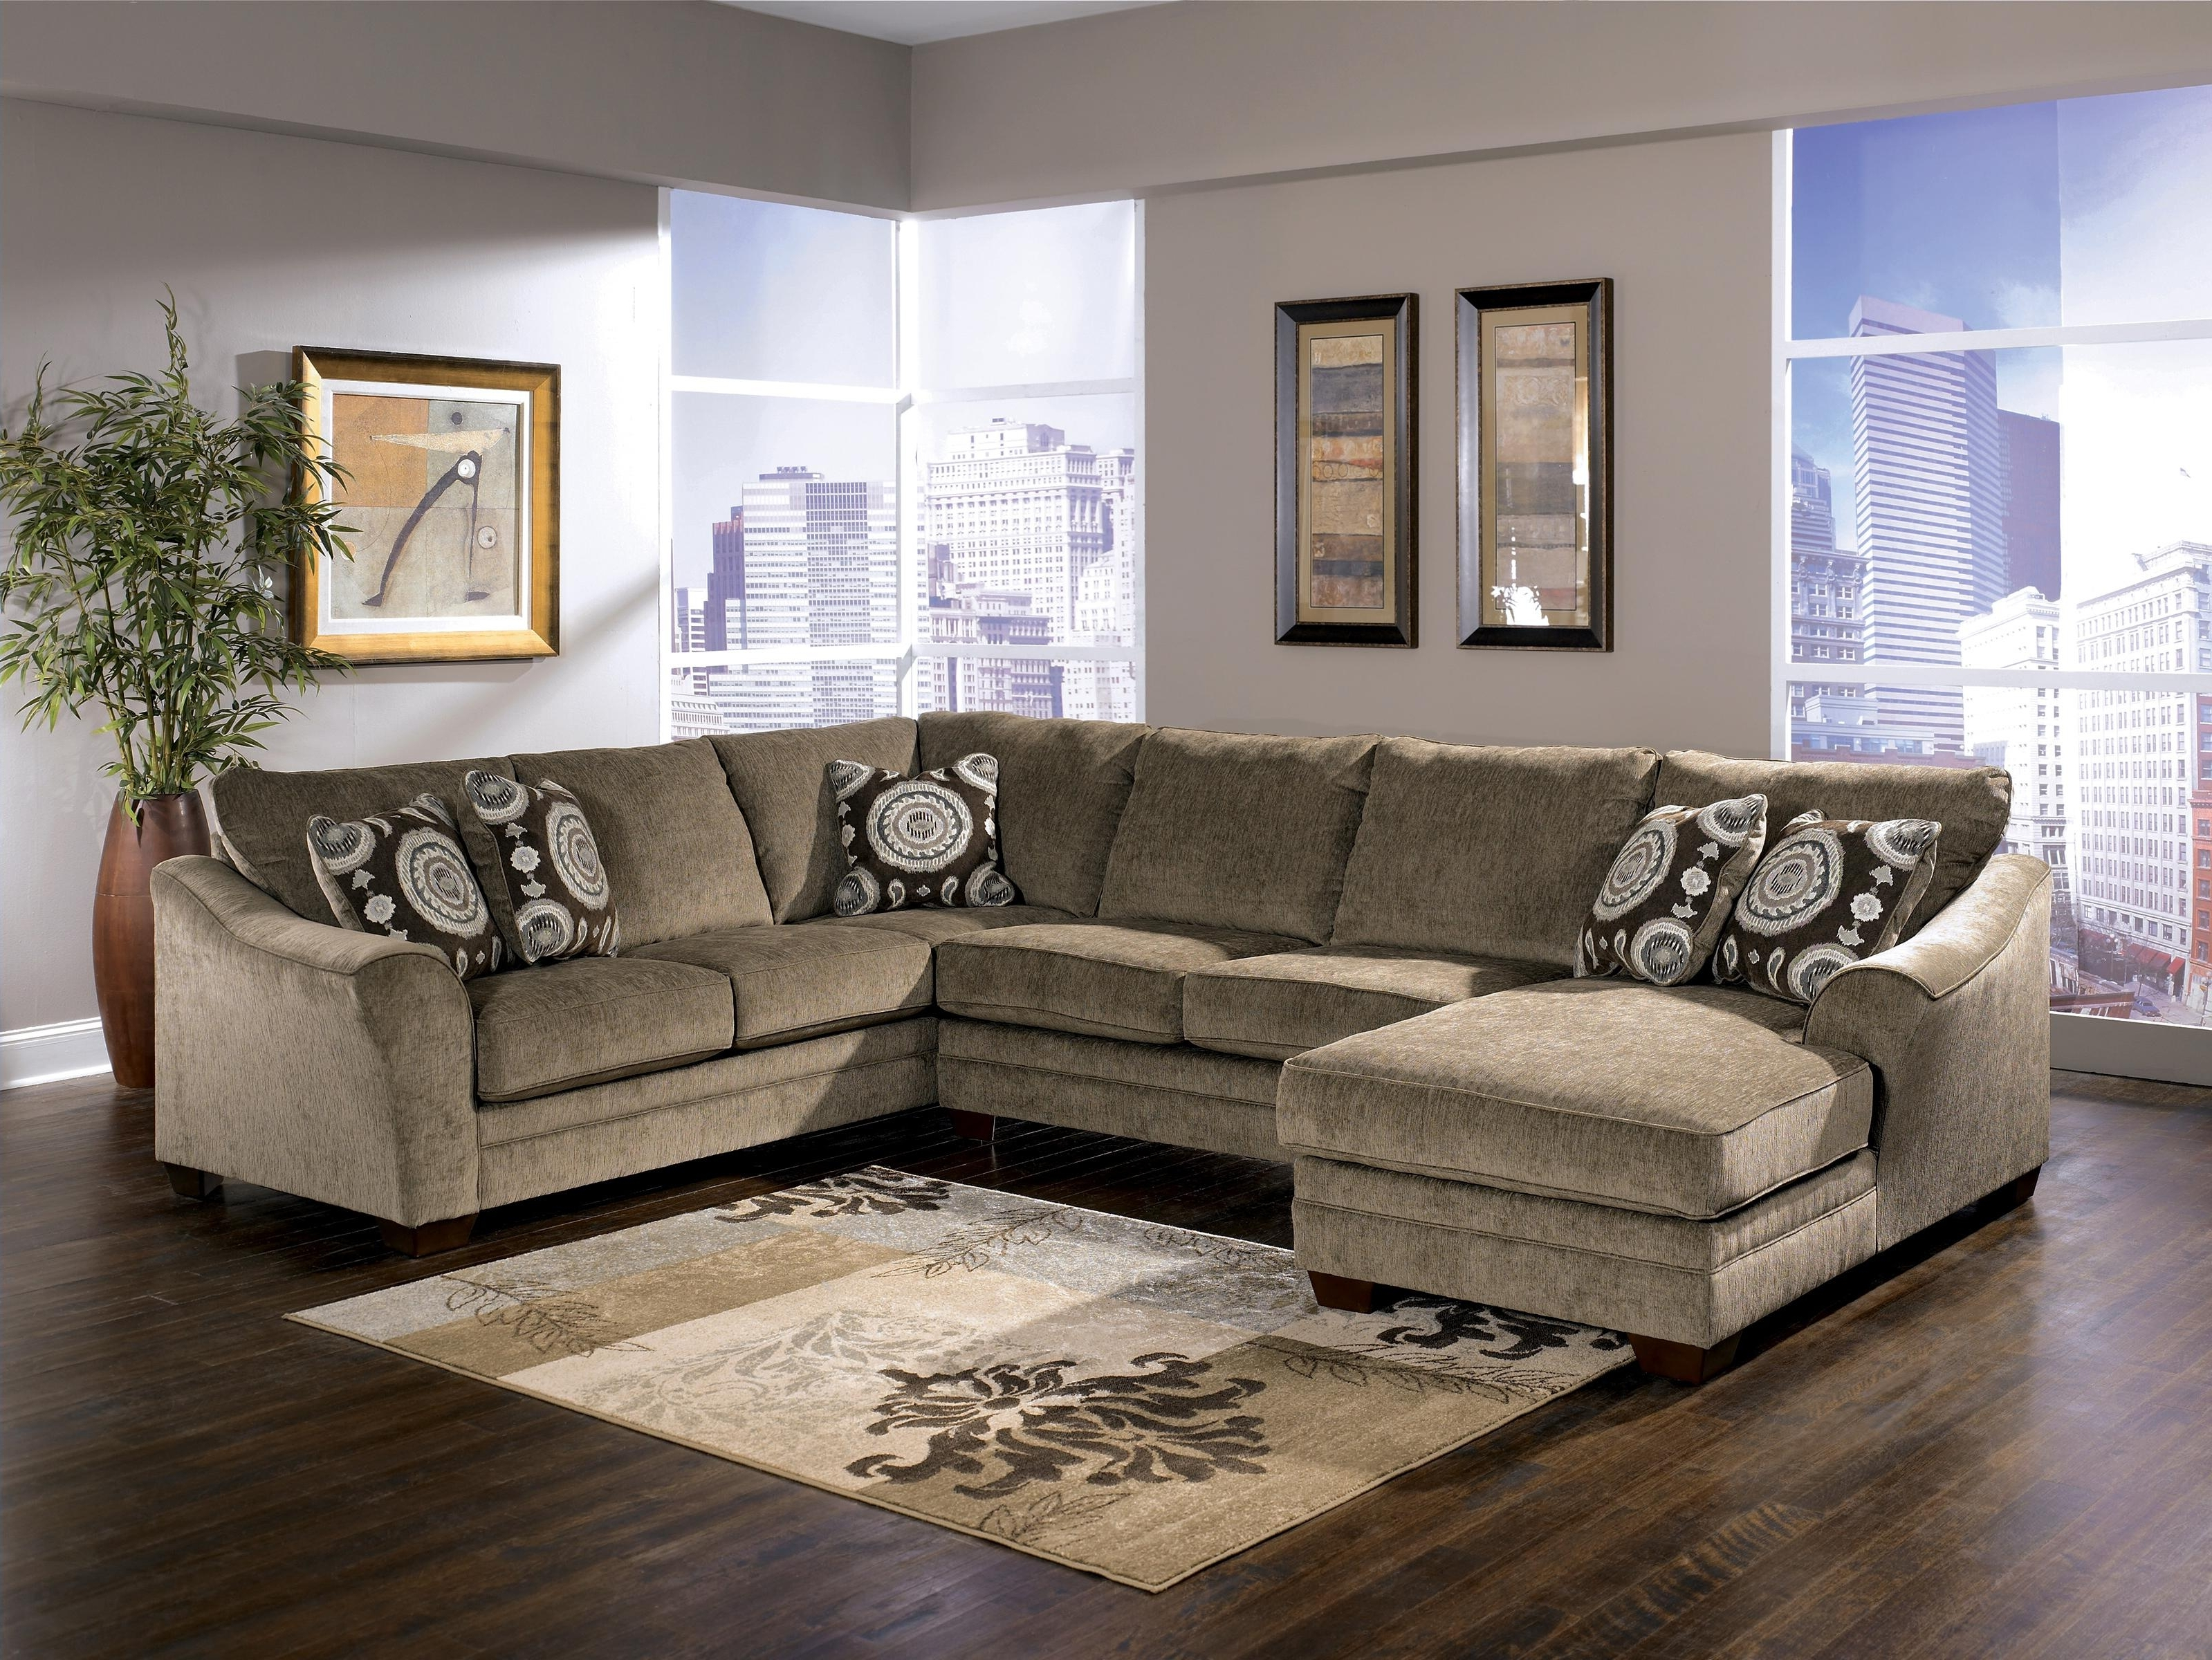 Well Liked El Paso Tx Sectional Sofas Intended For Signature Designashley Cosmo – Marble Sectional Sofa With (View 20 of 20)